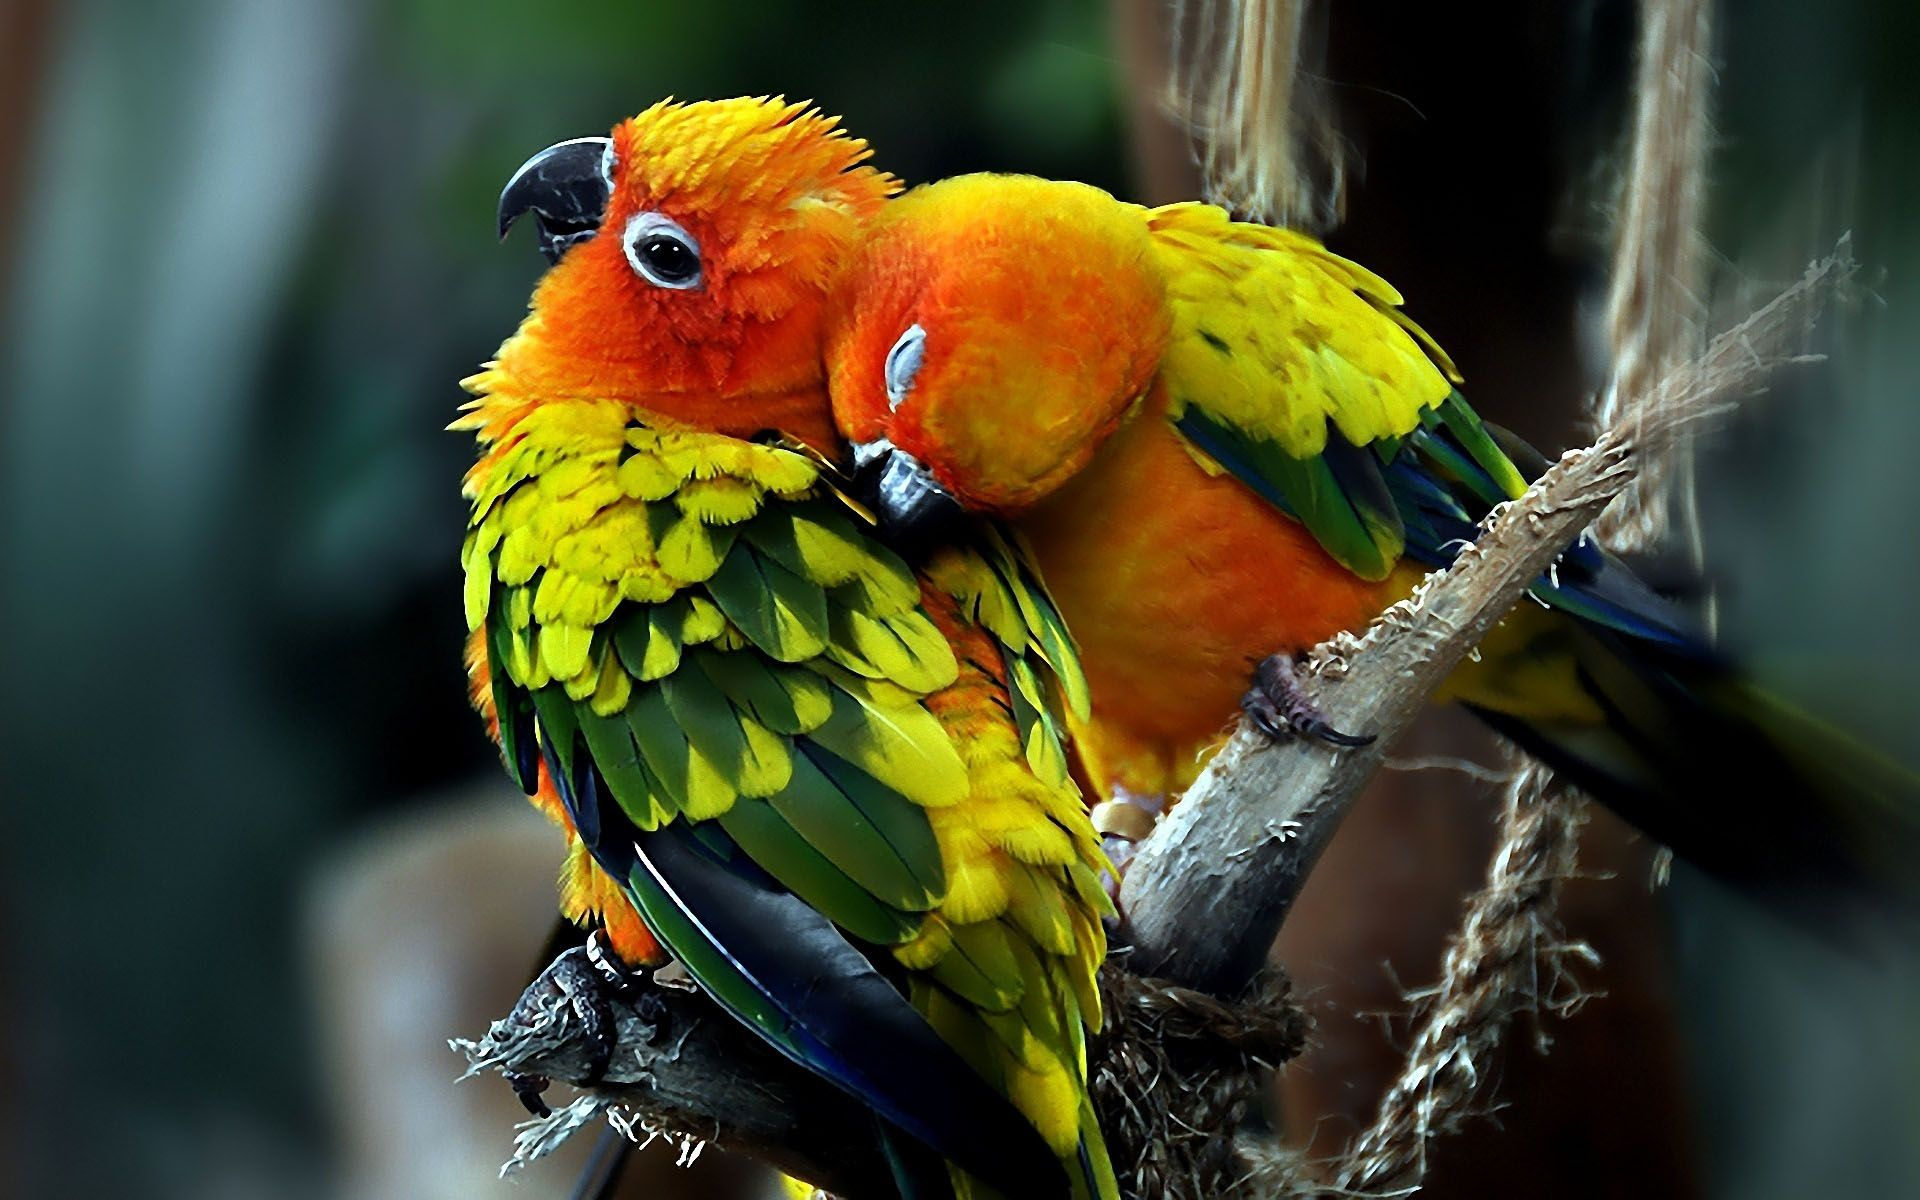 Cute Saying Hd Wallpapers Sun Conure Parrots 1920x1200 Parrot Wallpapers